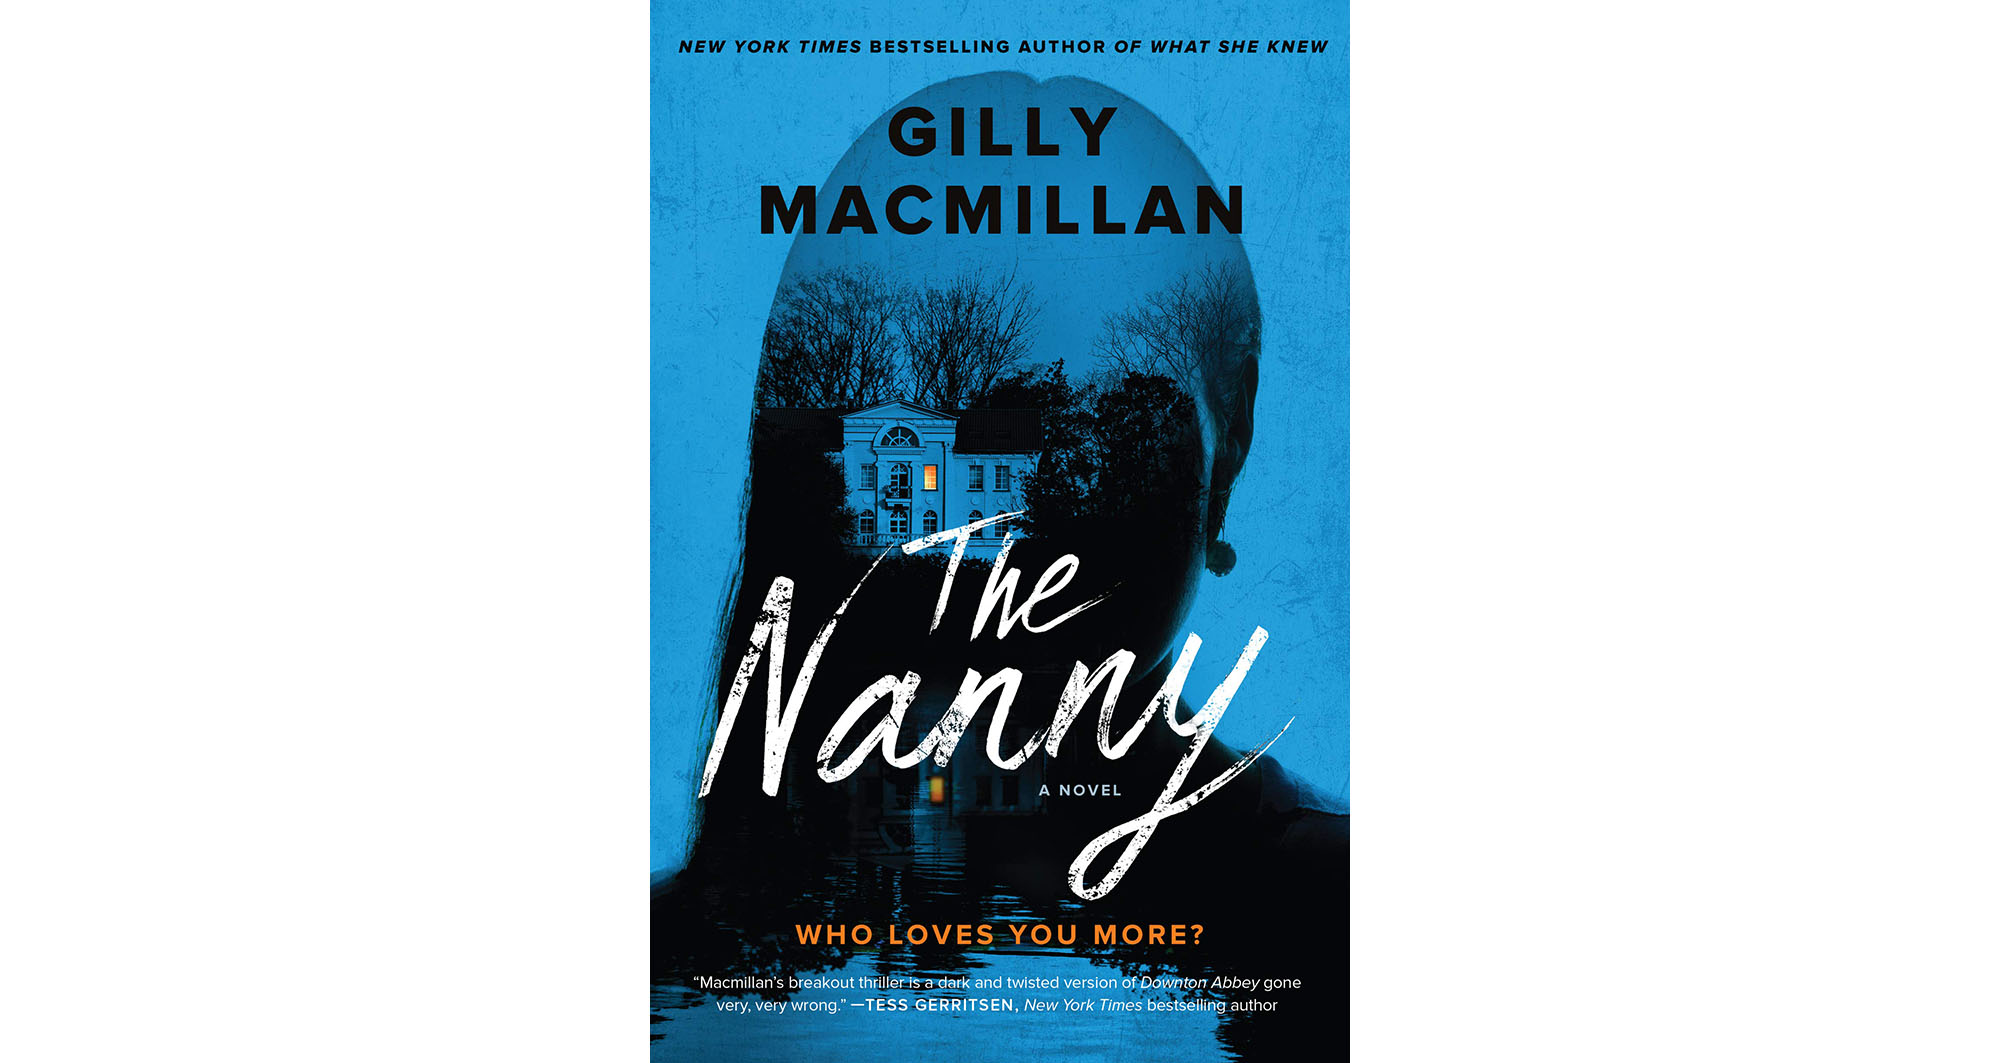 The Nanny, by Gilly Macmillan